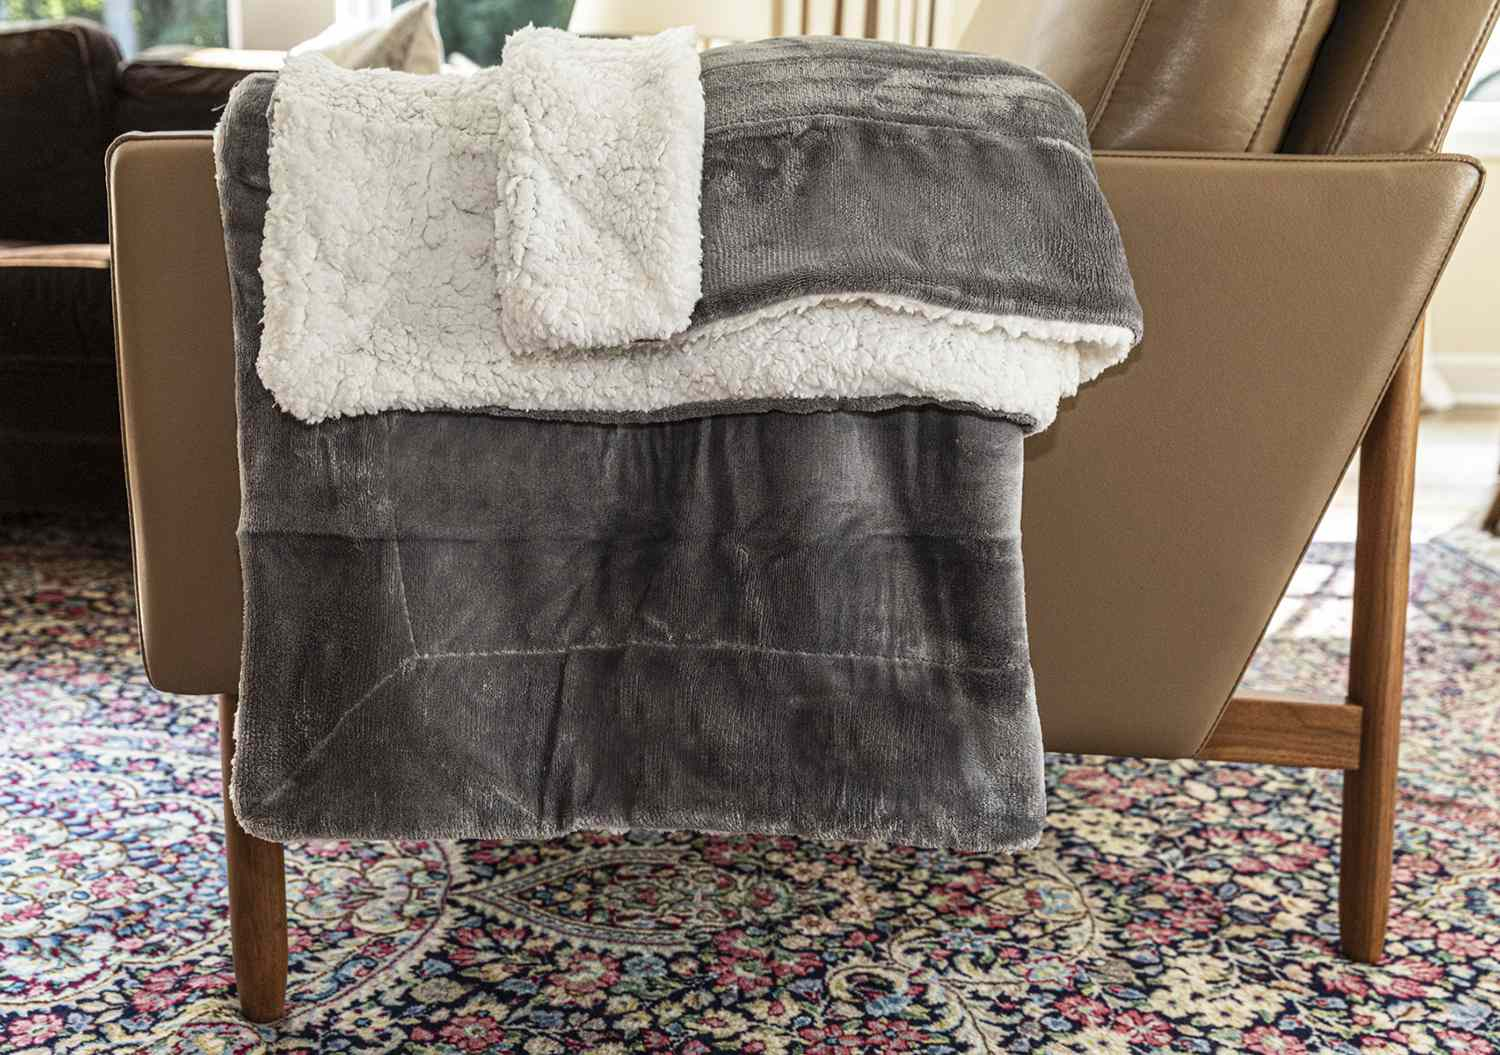 The 8 Best Throw Blankets of 2020